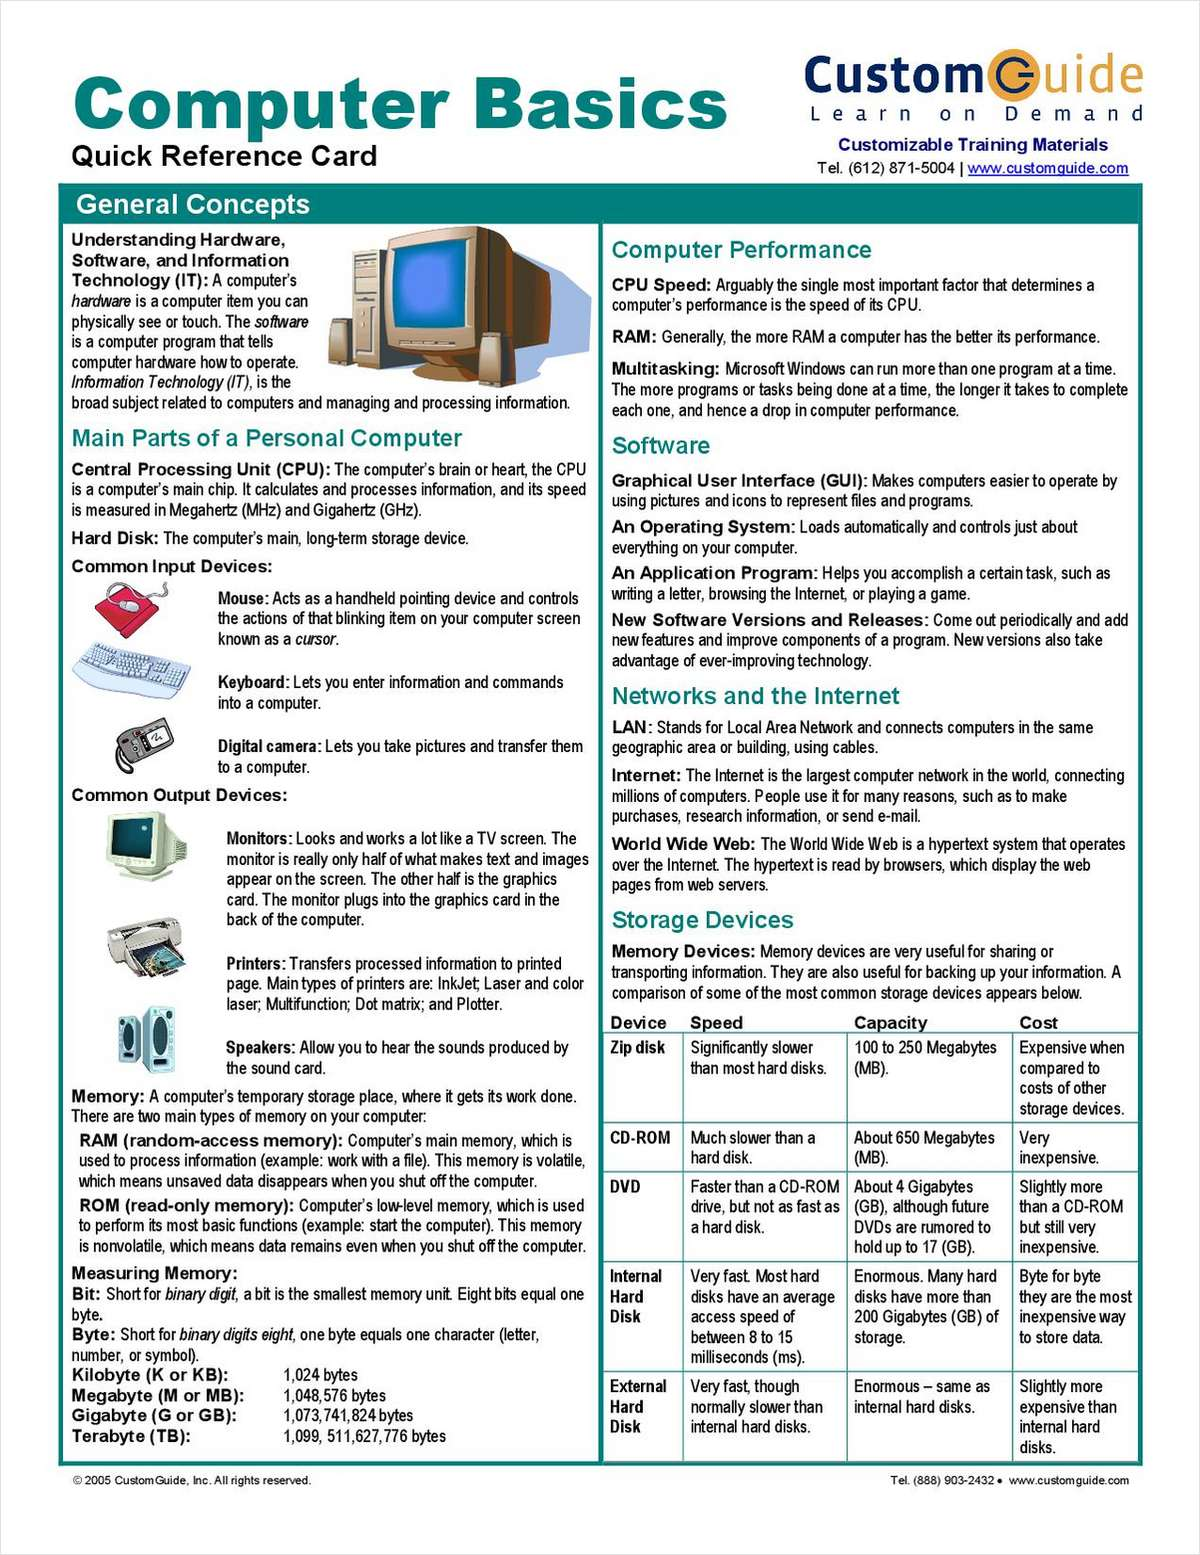 Computer Basics - Free Quick Reference Card